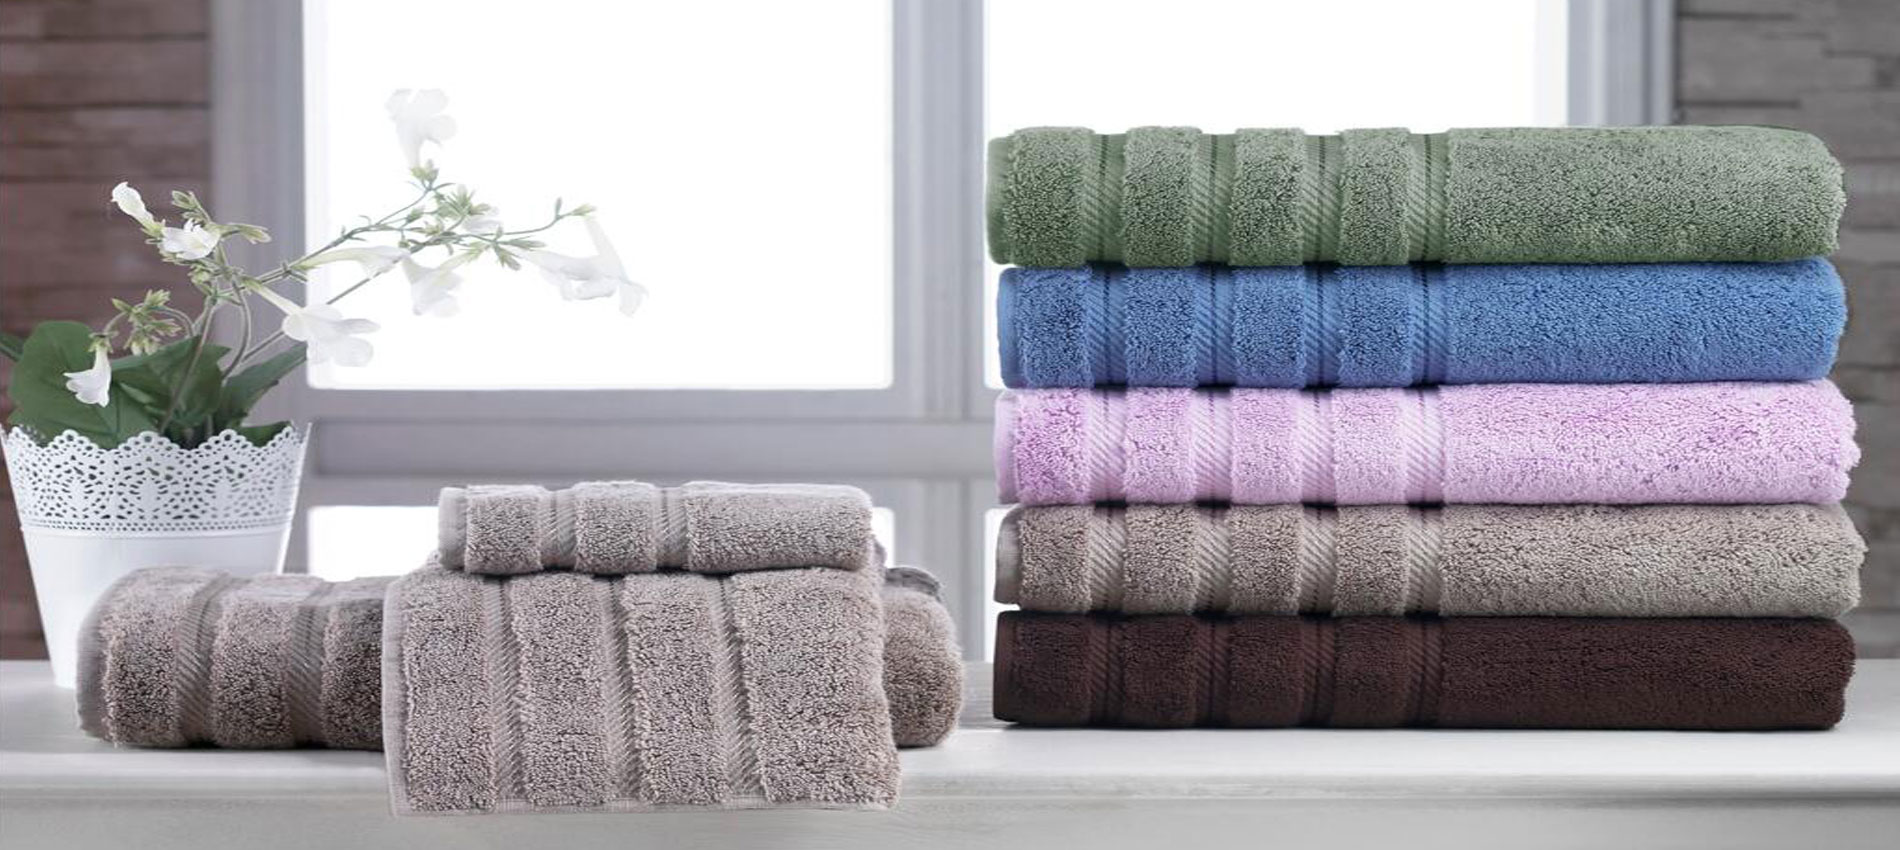 Household Towel Sets